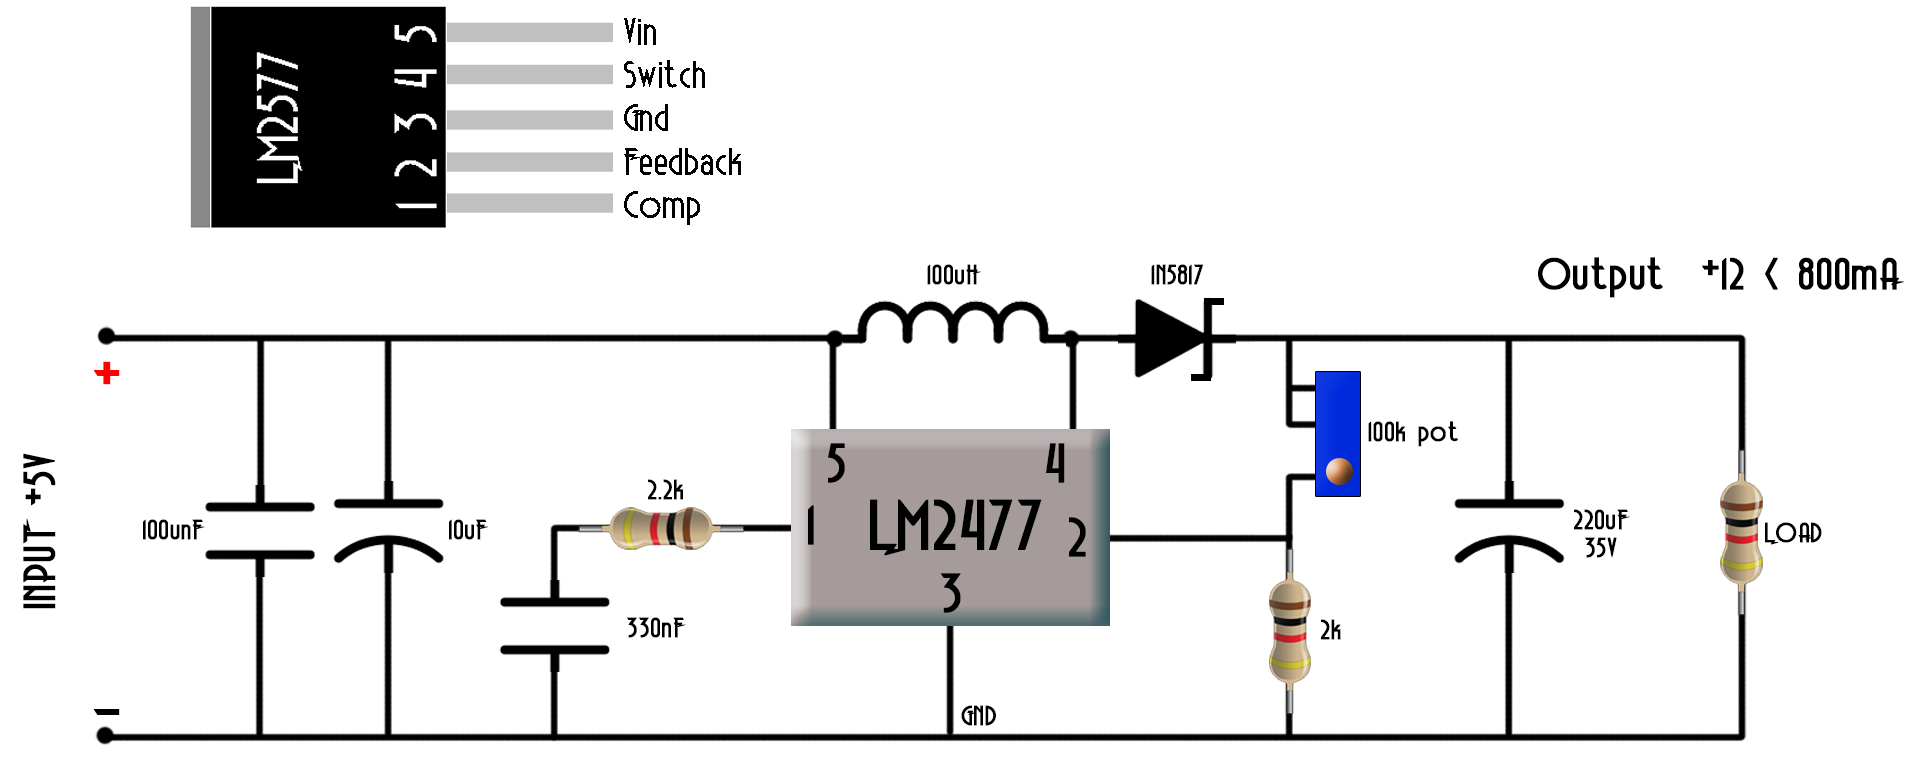 Re Circuit Diagram For An Inverter Dc To Boost Converter Homemade The Input Could Up 12 Volts Dont Apply Higher Voltage Or You Burn Lm2577 Adj Component In This Case We Need No External Switch Since